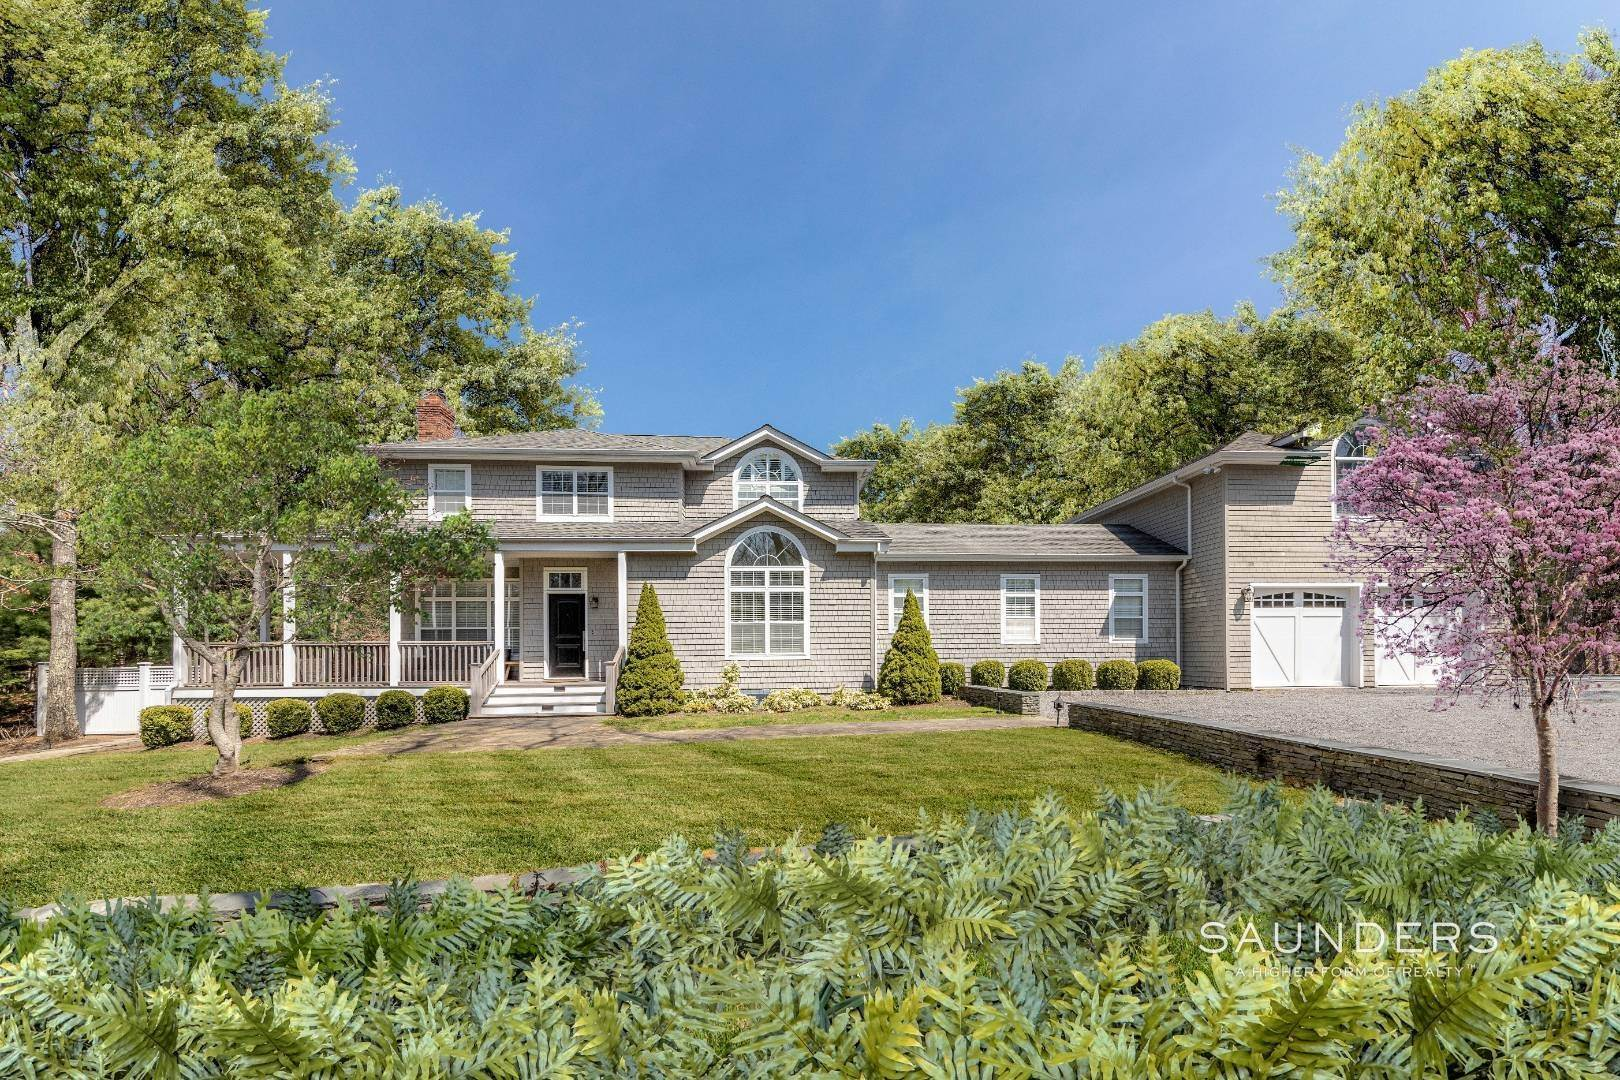 Single Family Homes for Sale at Beautifully Appointed Hamptons-Chic Home 12 Shorewood Drive, East Hampton, East Hampton Town, NY 11937